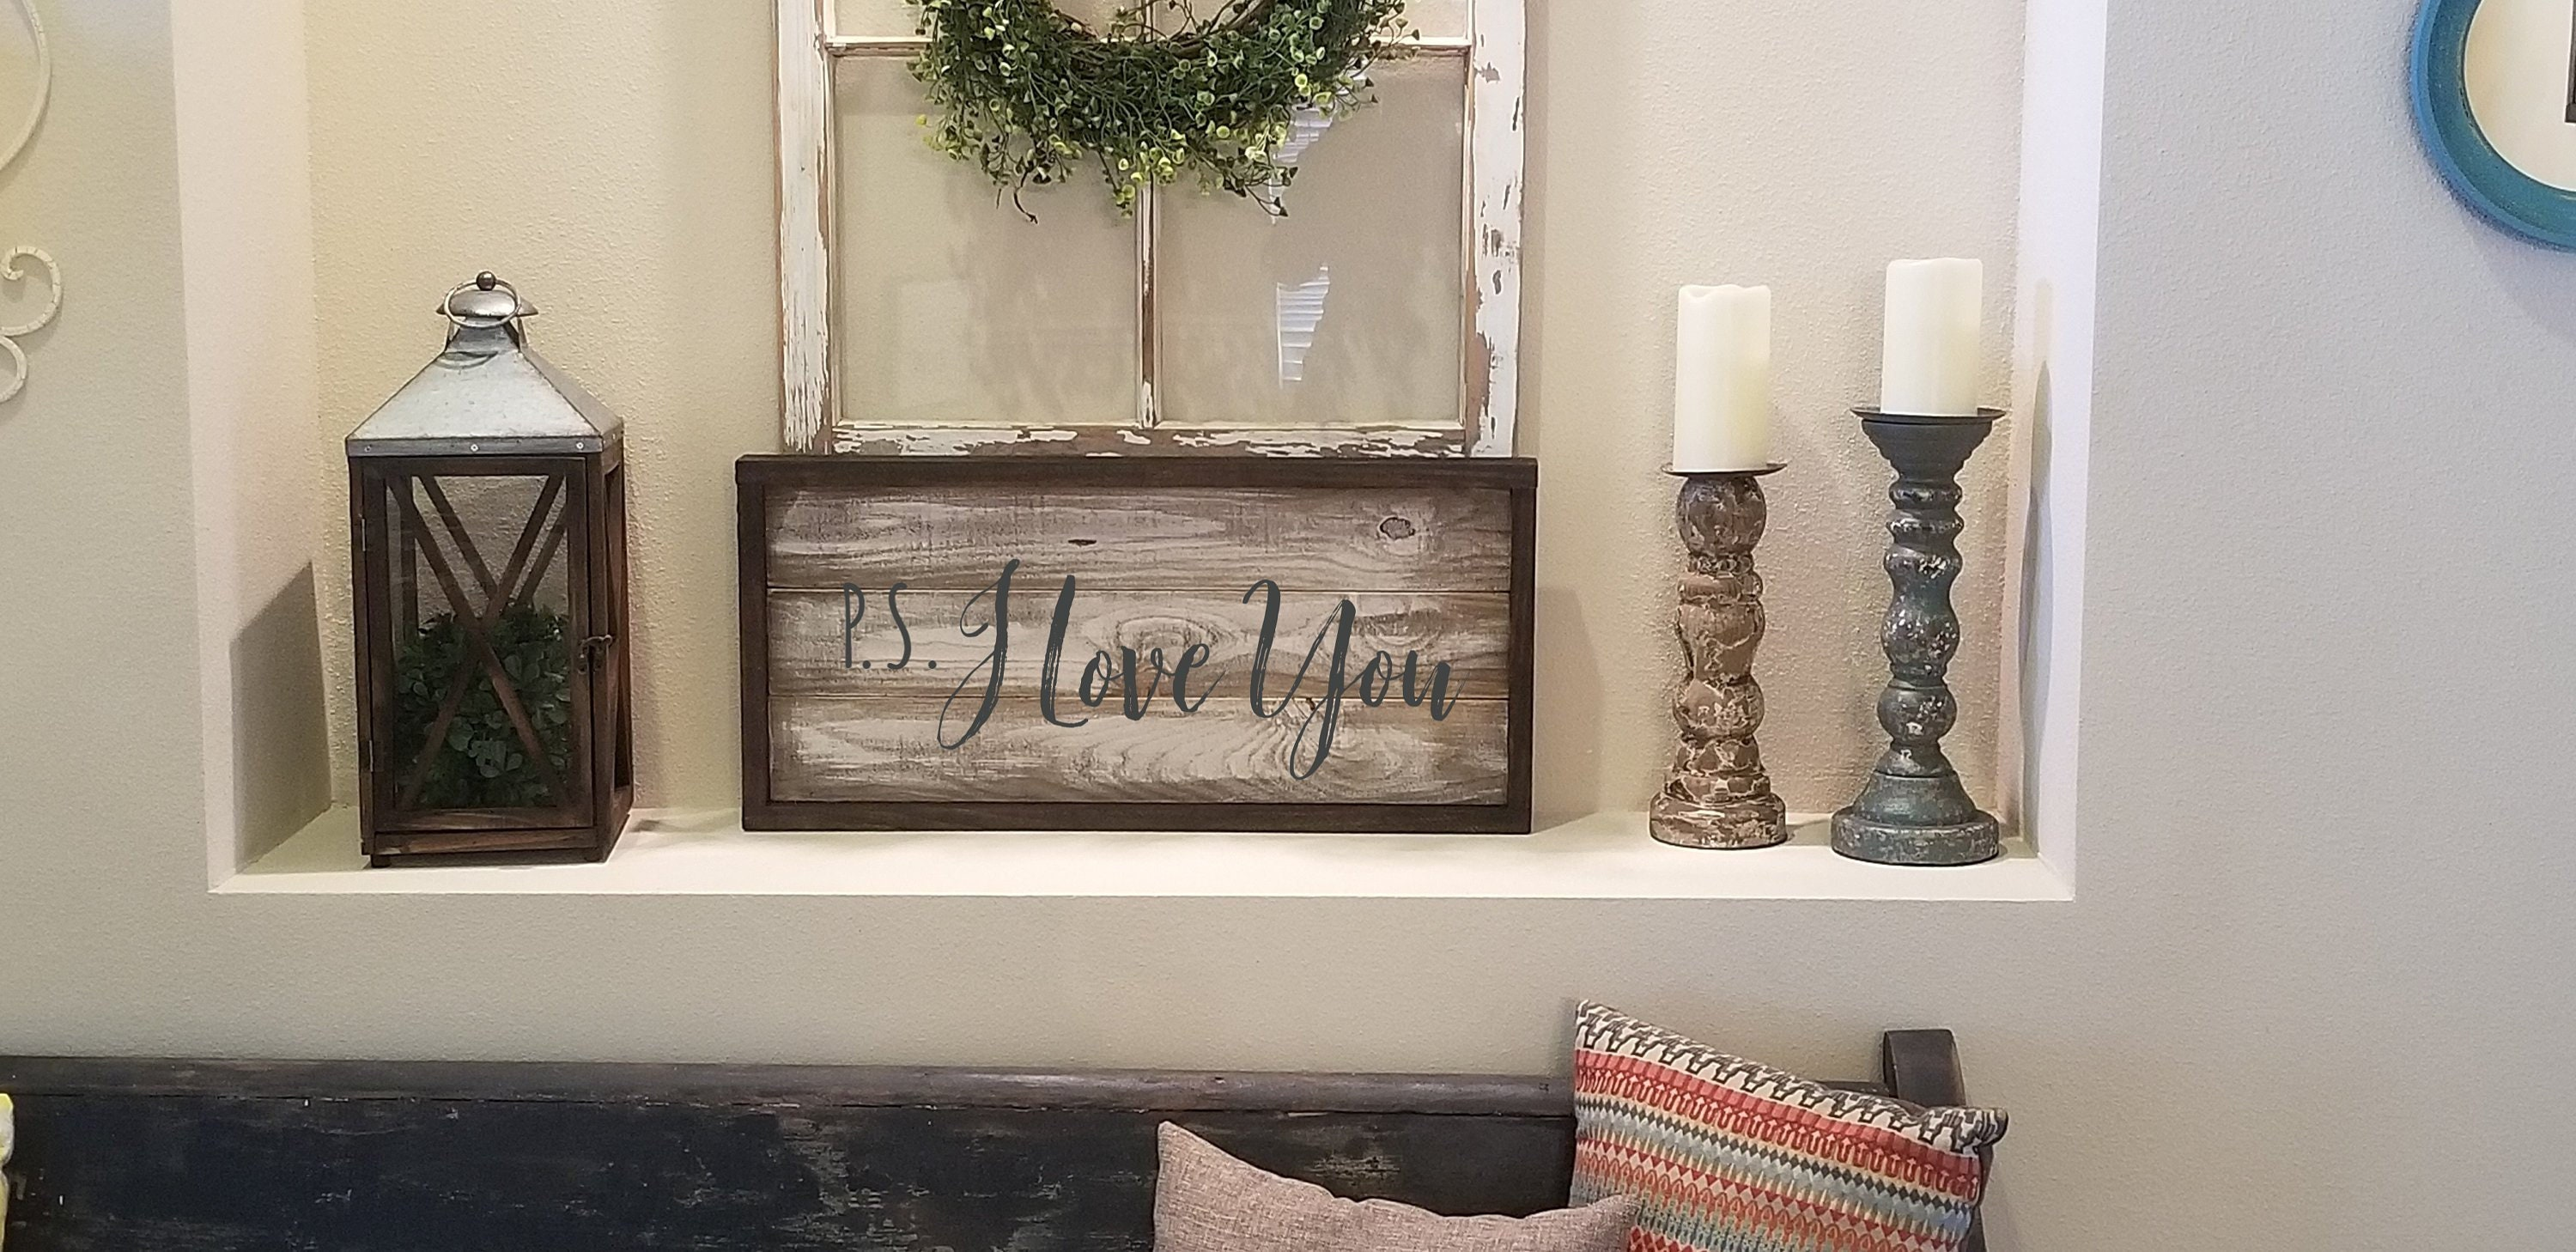 I Love You Sign Bedroom Decor Wedding Decor Wedding Gift Wood Sign Farmhouse Decor Wedding Decor Rustic Wedding Over The Bed Sign